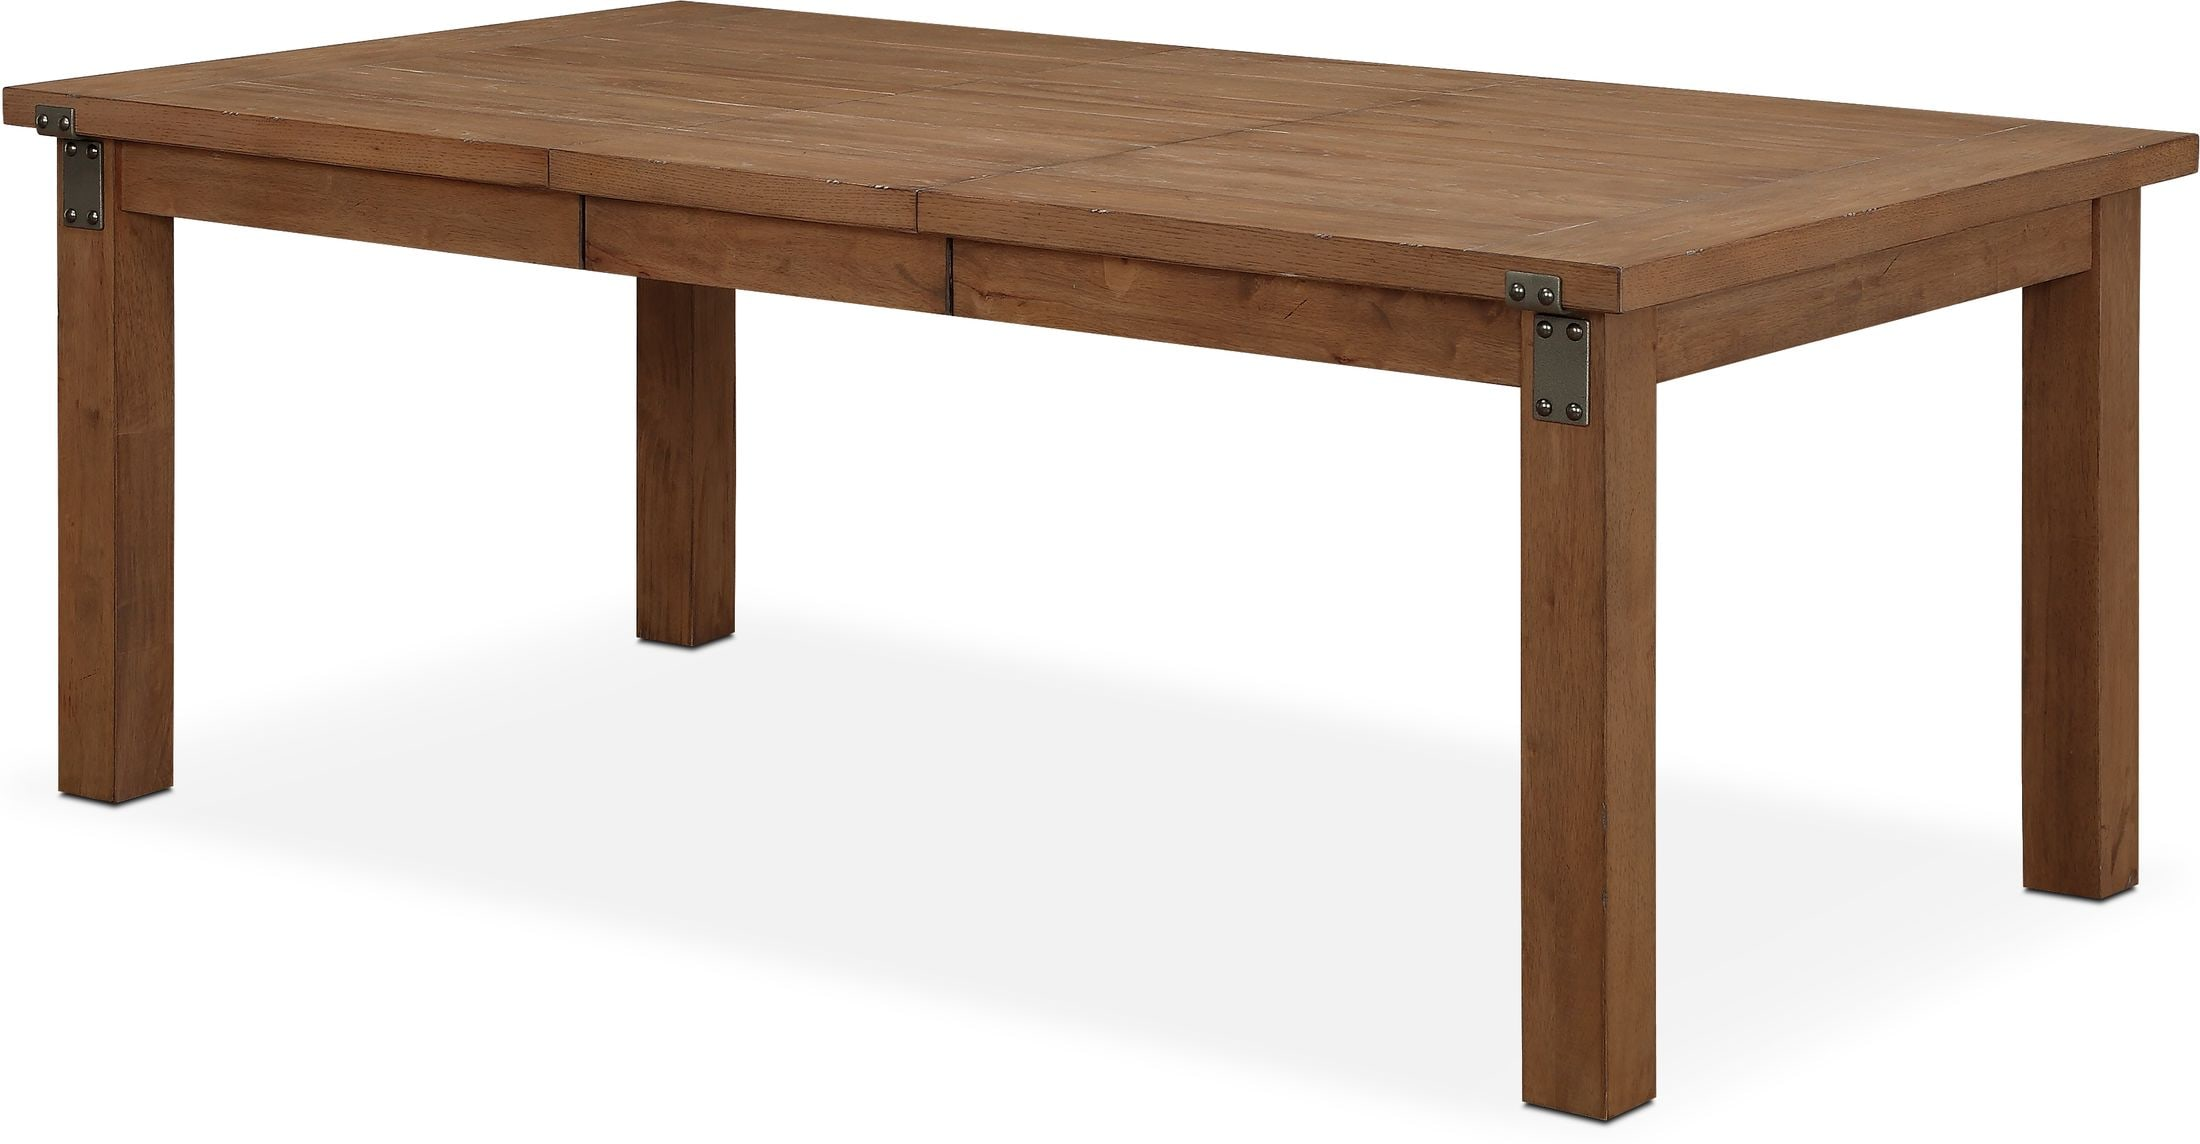 Dining Room Furniture - Hampton Dining Table